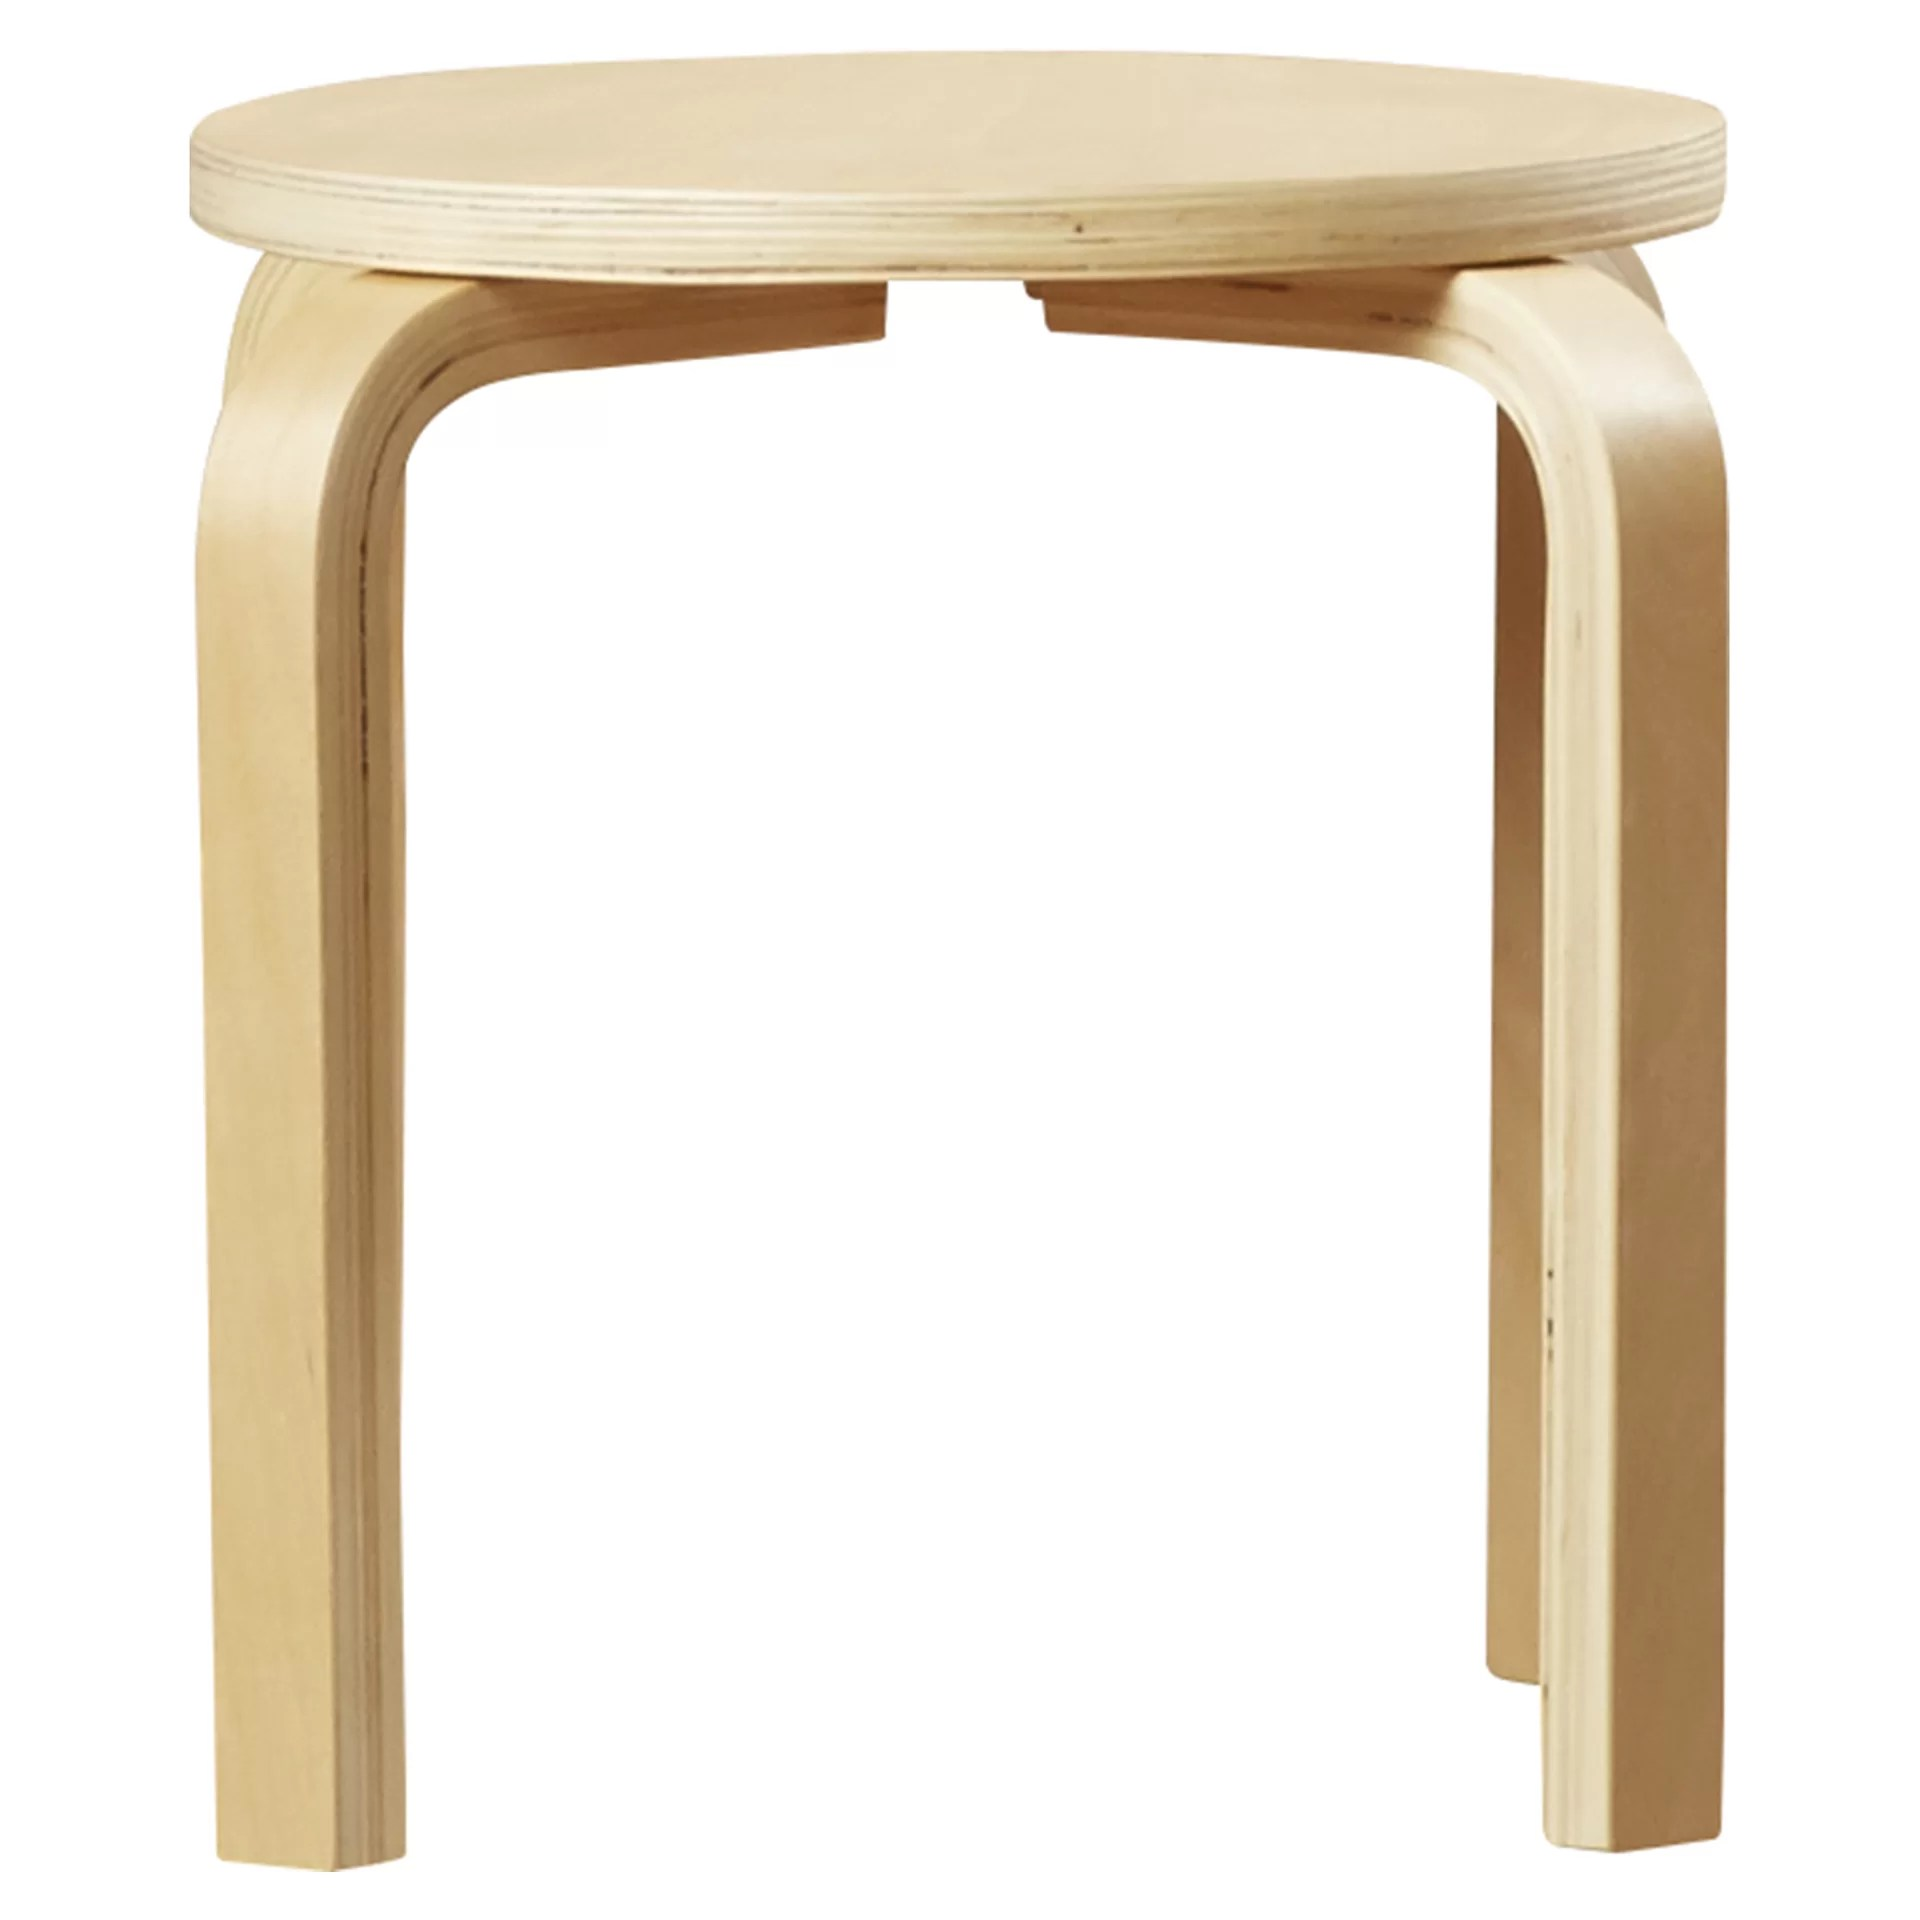 Kids Wooden Stool Anatex Wooden Sitting Kids Stool And Reviews Wayfair